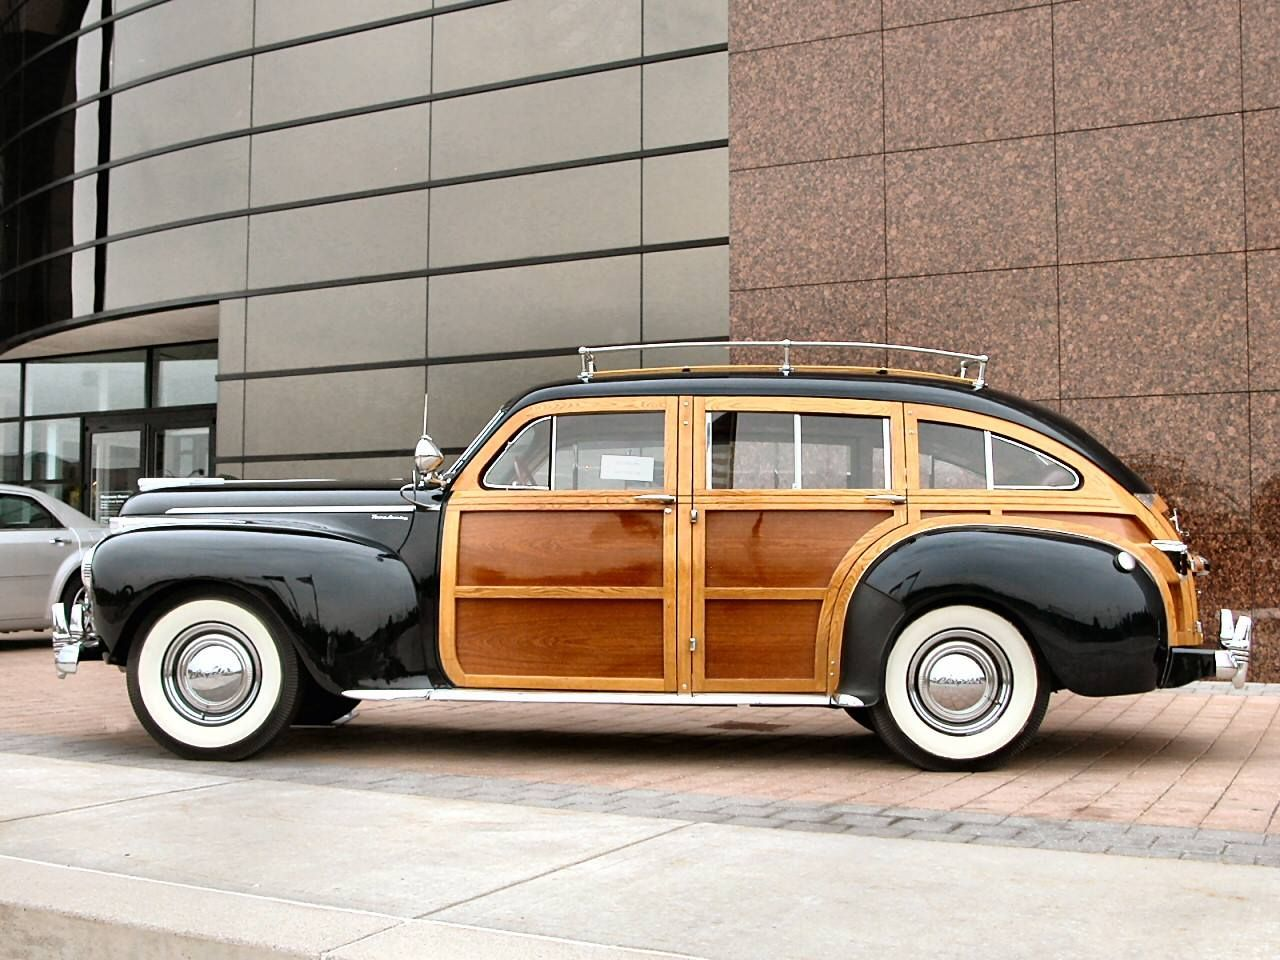 1941 chrysler town country station wagon re pin brought to you by agents at houseofinsurance. Black Bedroom Furniture Sets. Home Design Ideas